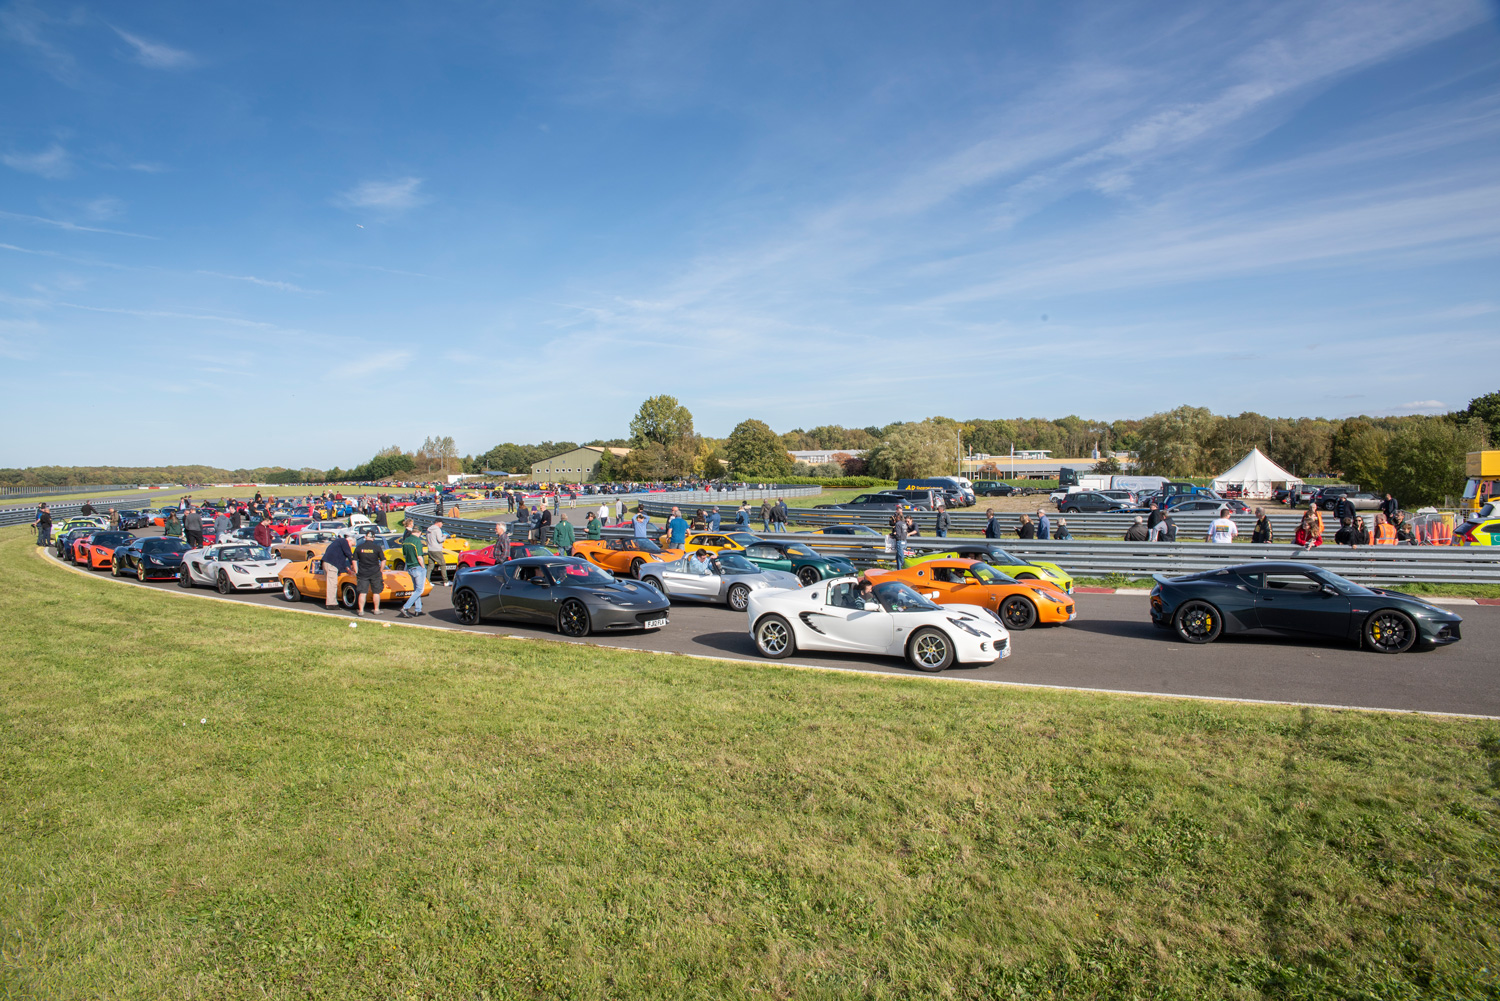 More than 1600 cars showed up for the Lotus 70th anniversary party at Hethel.